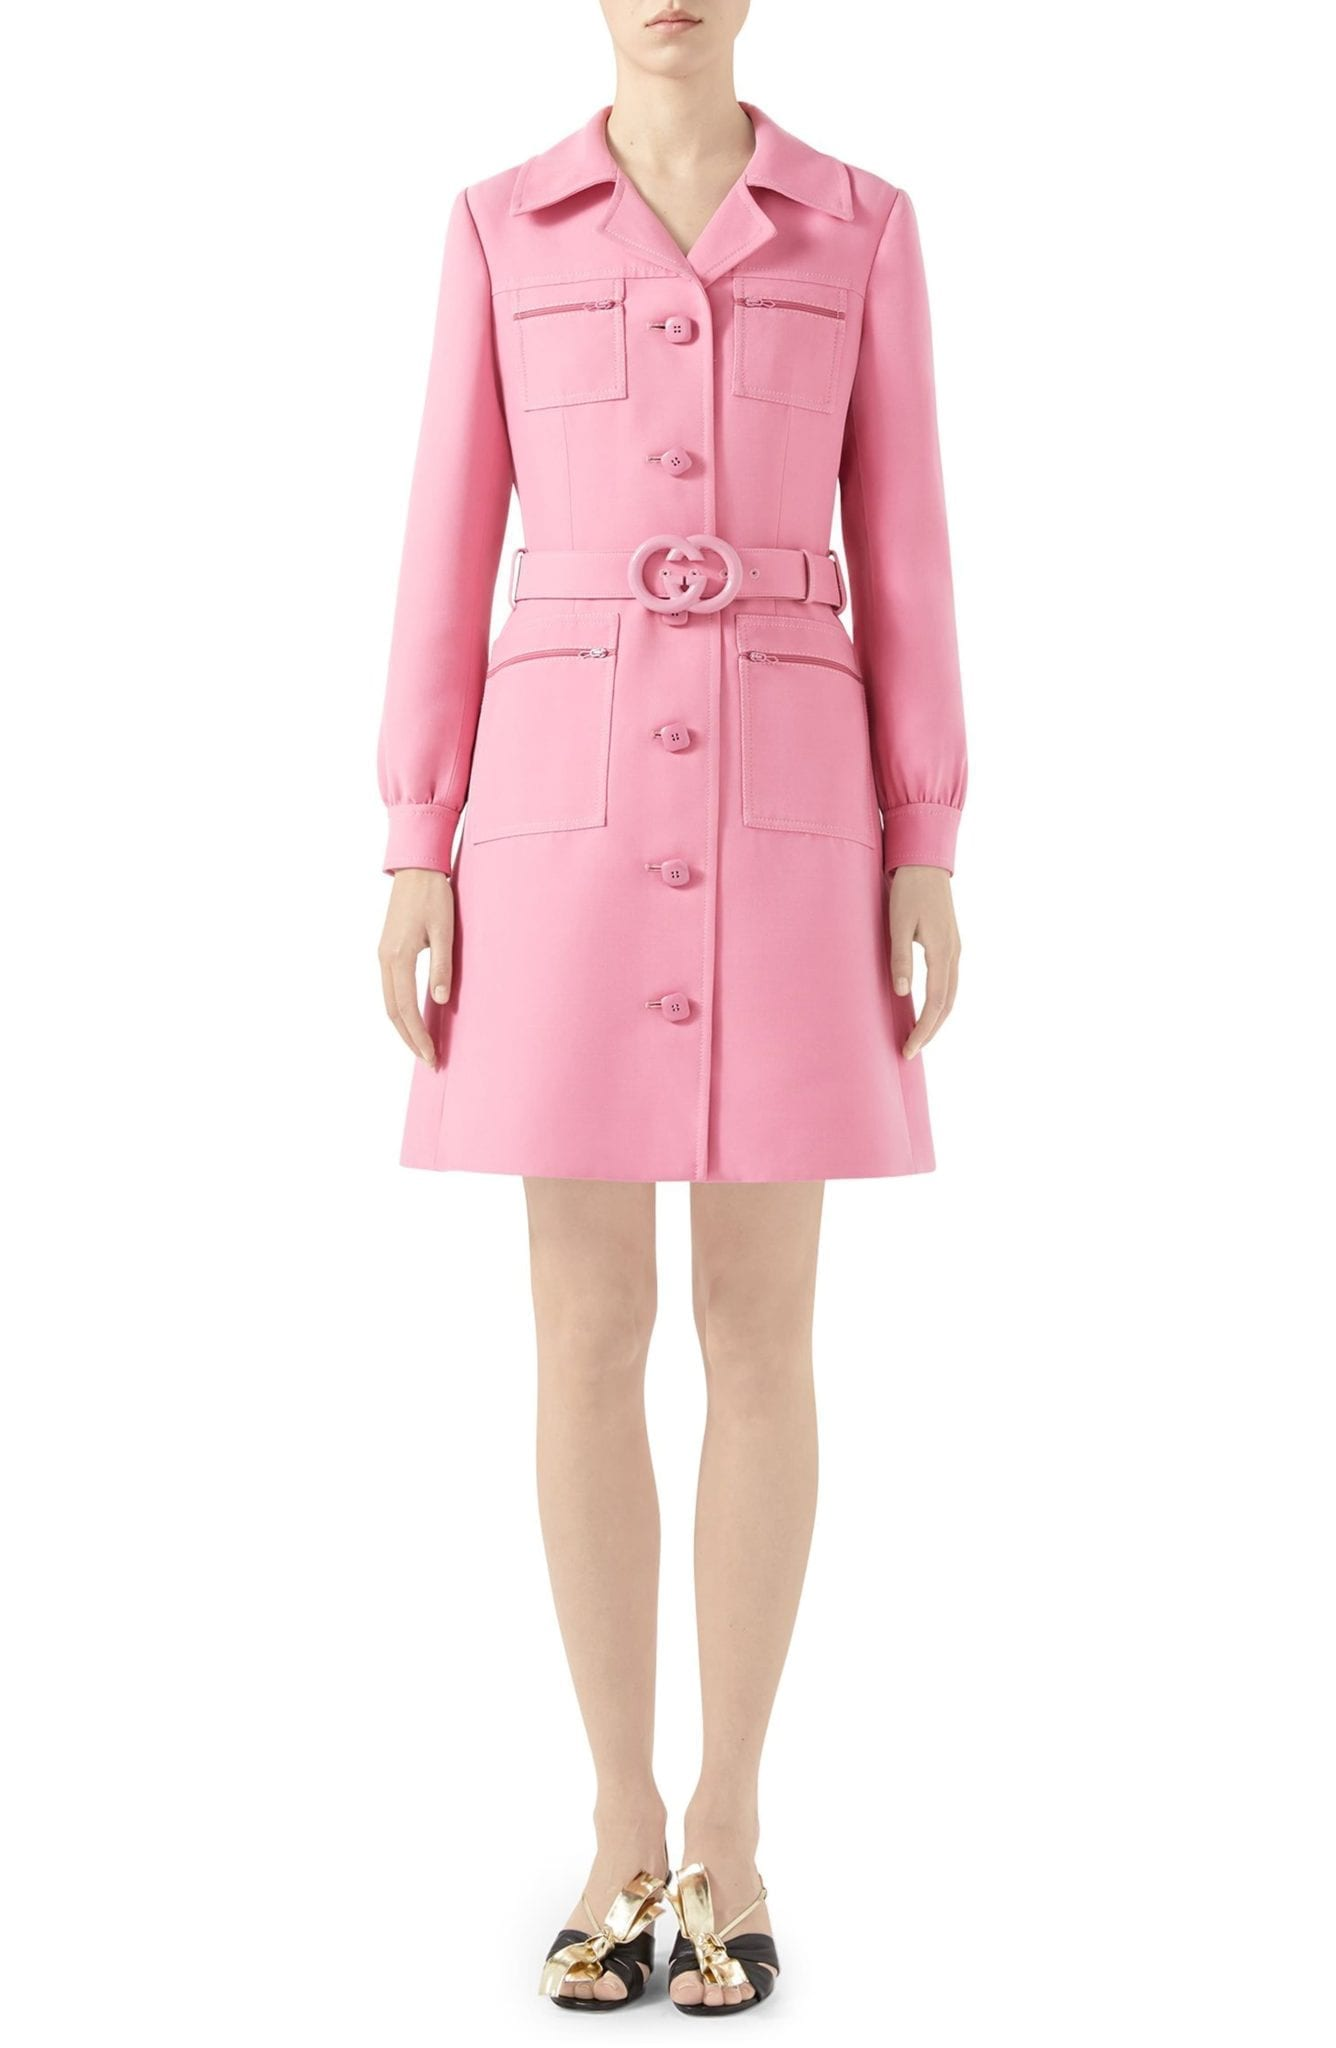 78faae1d9 GUCCI Double G Belted Cady Crepe Coat Pink Mini Dress - We Select ...